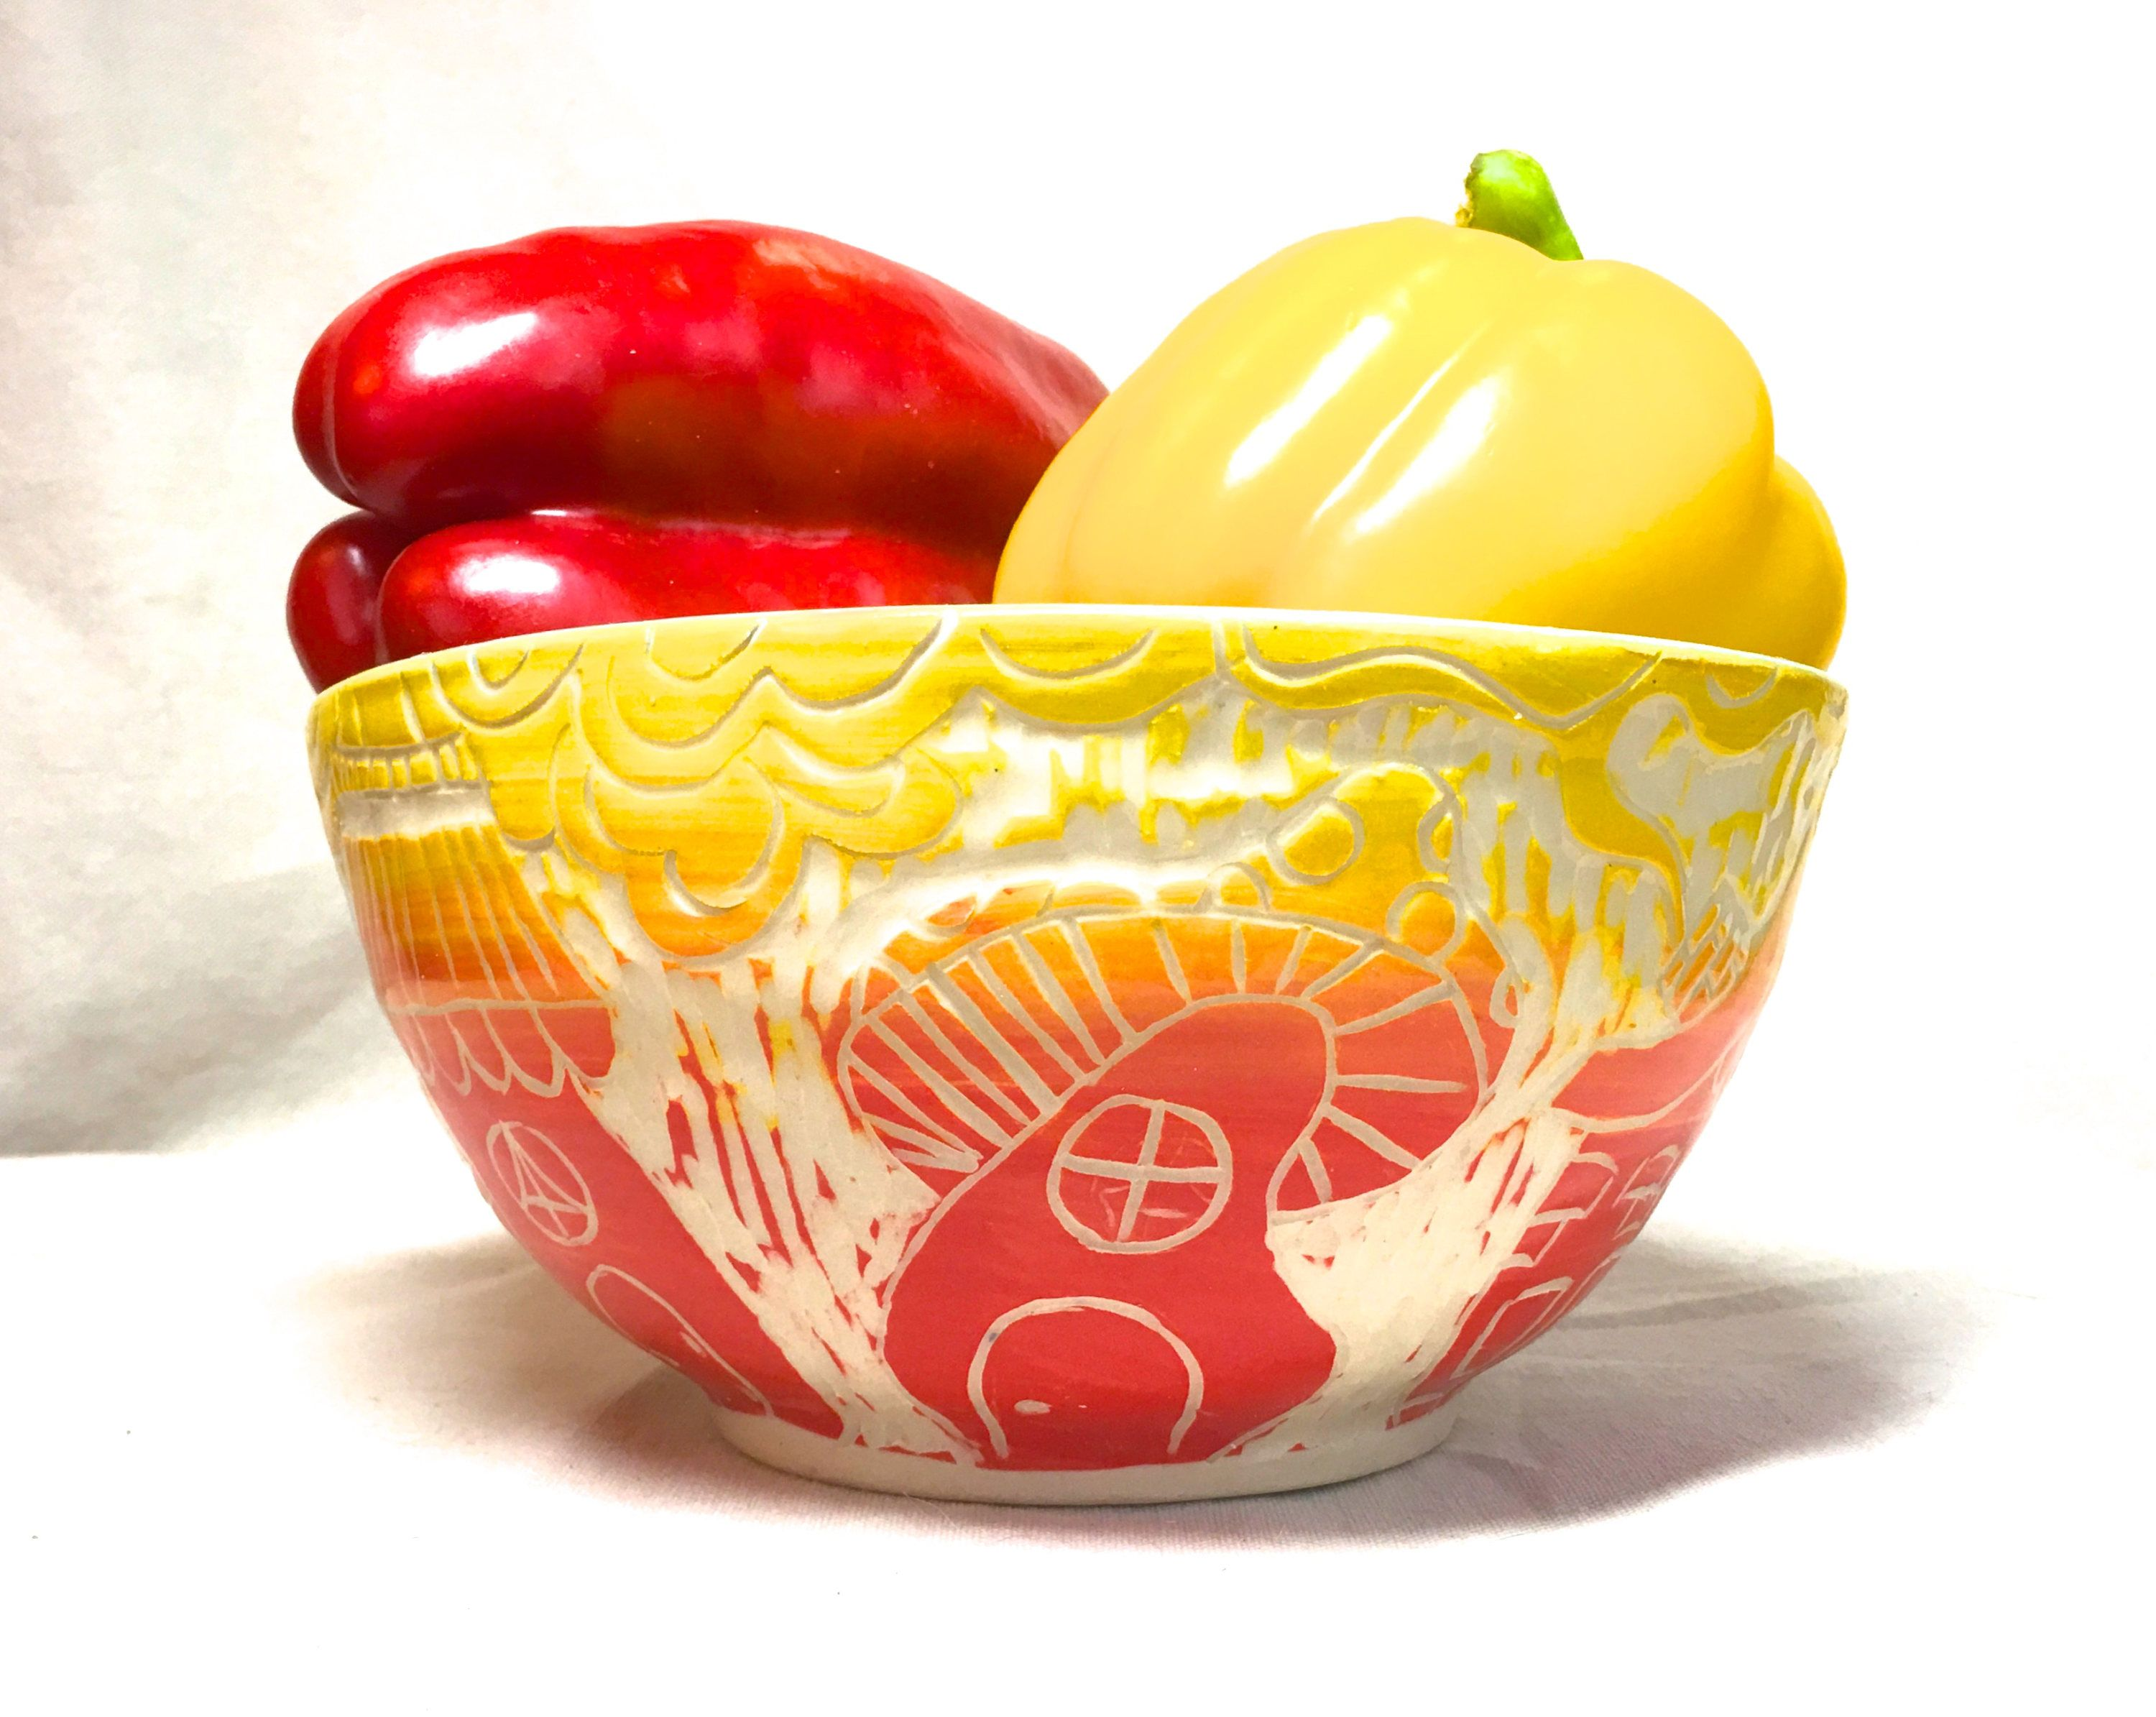 Large Serving Bowl Whimsical Ceramic Red Yellow Houses Mixing Salad Fruit Hand Carved Pottery Wedding Gift Anniversary By Funnfiber On Etsy